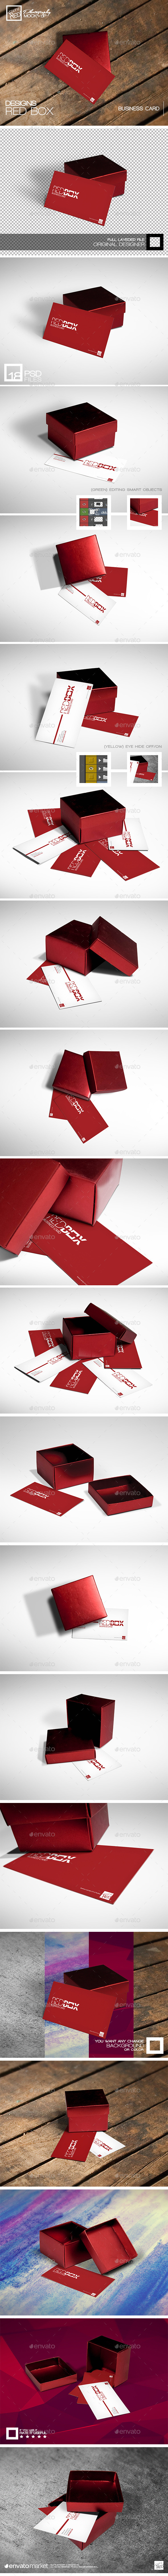 GraphicRiver Mock-up 009 Red Box 10981113